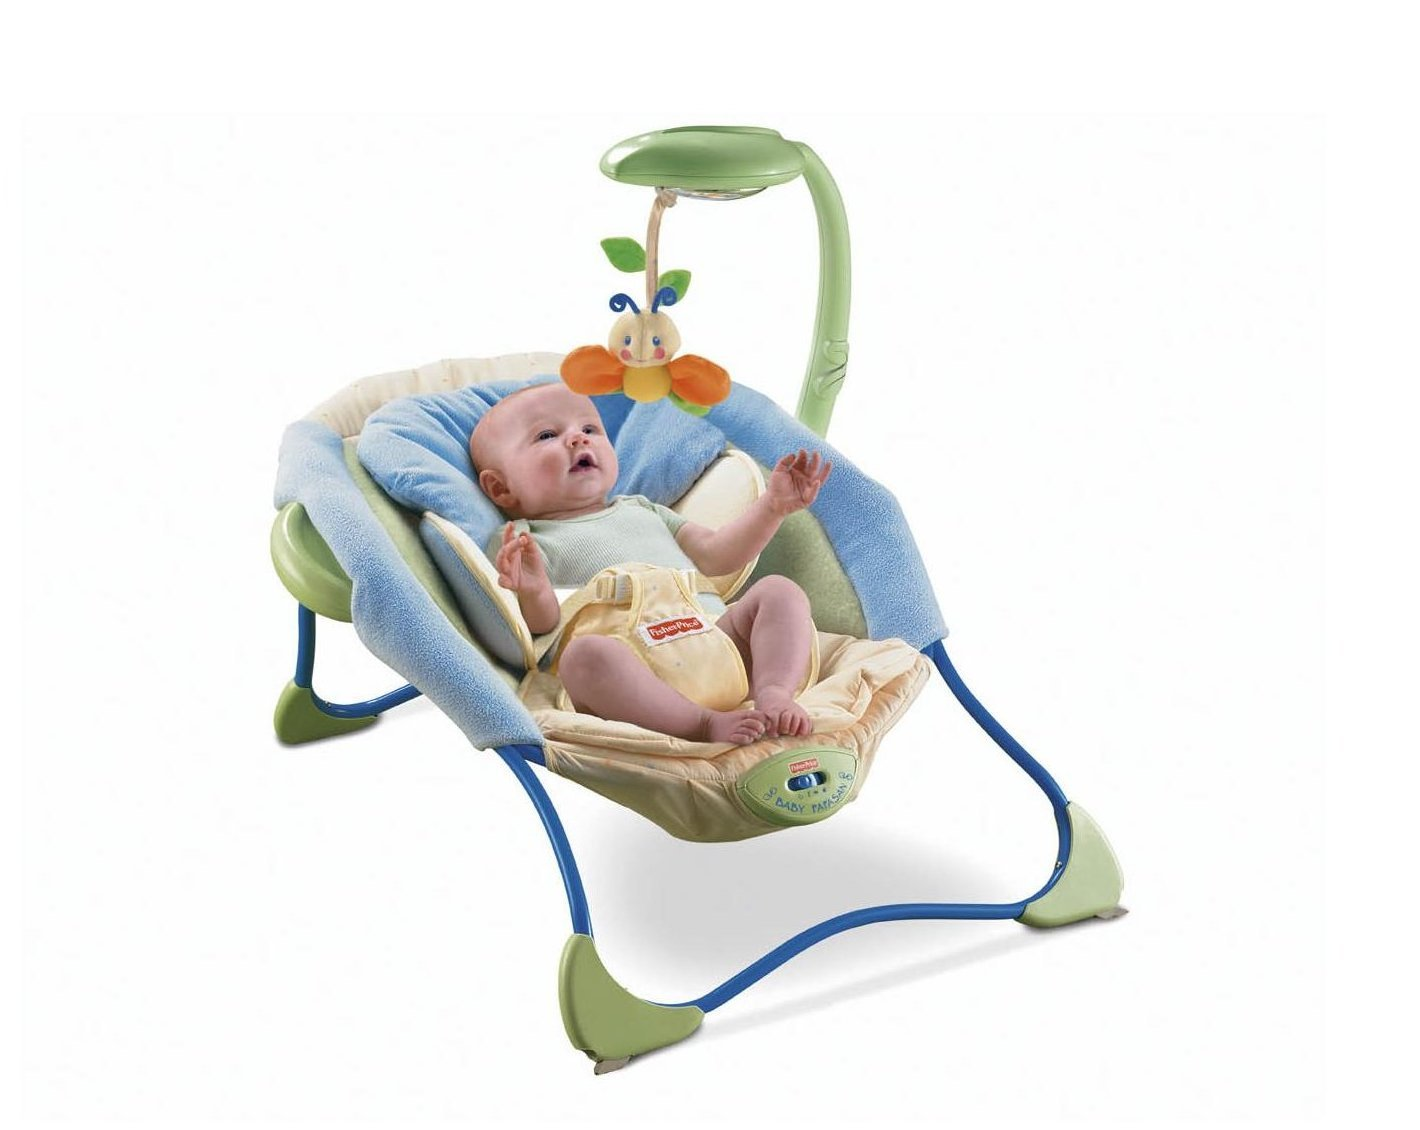 Fisher price baby papasan chair - Amazon Com Fisher Price Baby Papasan Infant Seat Nature S Wonder Discontinued By Manufacturer Infant Sitting Chairs Baby